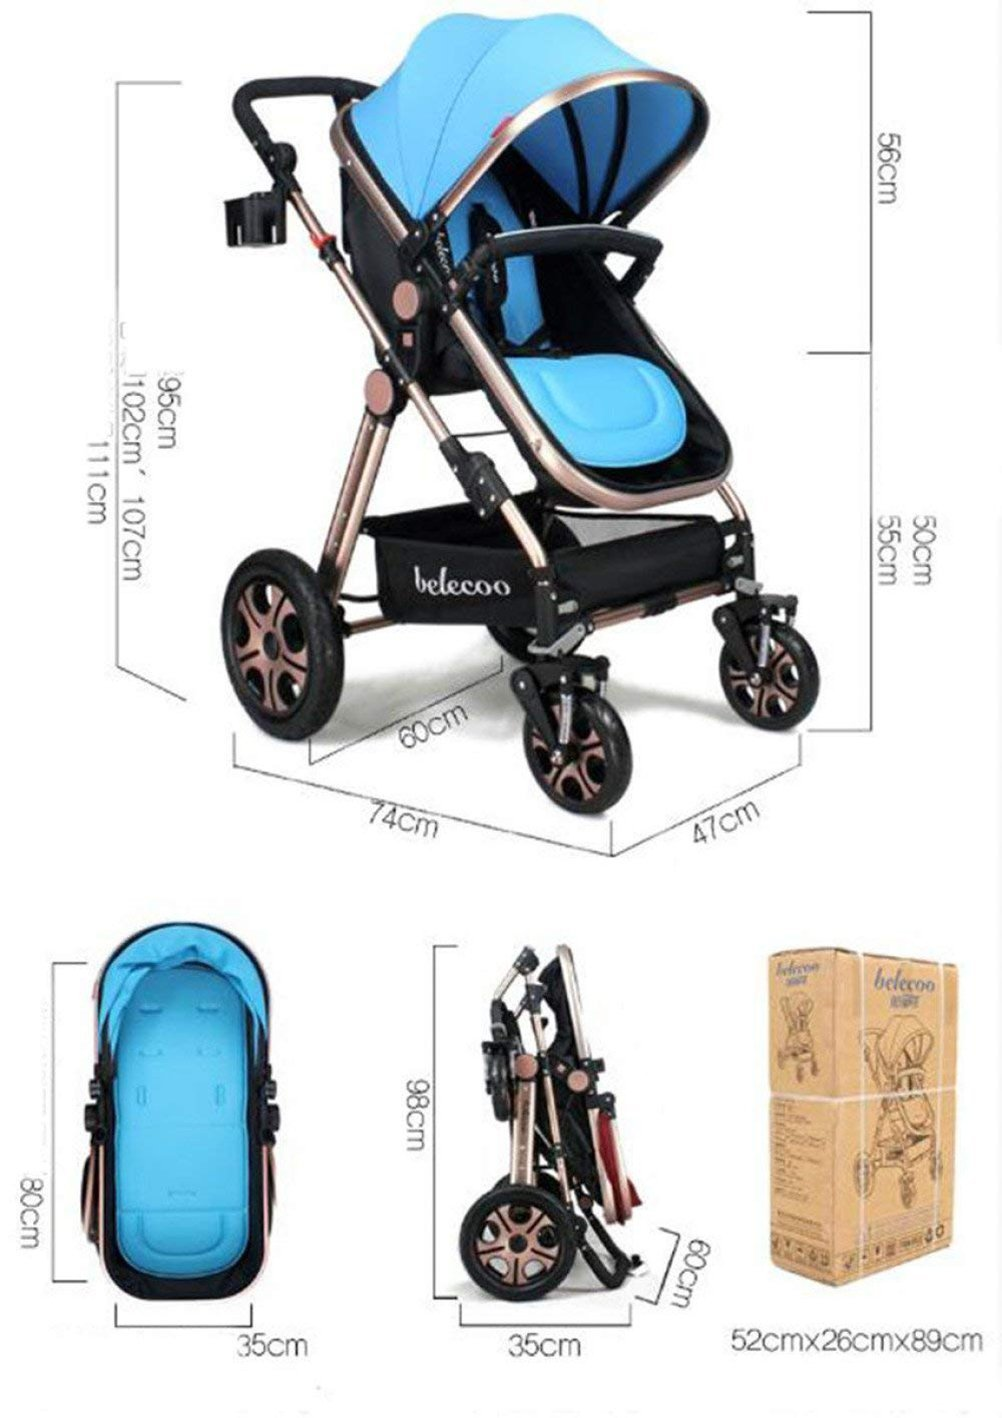 Baby Cart High Landscape Baby Cart Travel System Can Sit and Lie Down Children's Cart Four Seasons Universal Lightweight Stroller Adjustable Baby Stroller(Blue)  Travel friendly lighting design, perfect for travel and day trips. Convenient one-handed and automatic folding, perfect for car travel and vacation.. Easy to push and pull, comfortable grip, heat resistant foam handle and smooth pulley. Simple, 1 vertical folding, automatic locking, easy to carry. 3